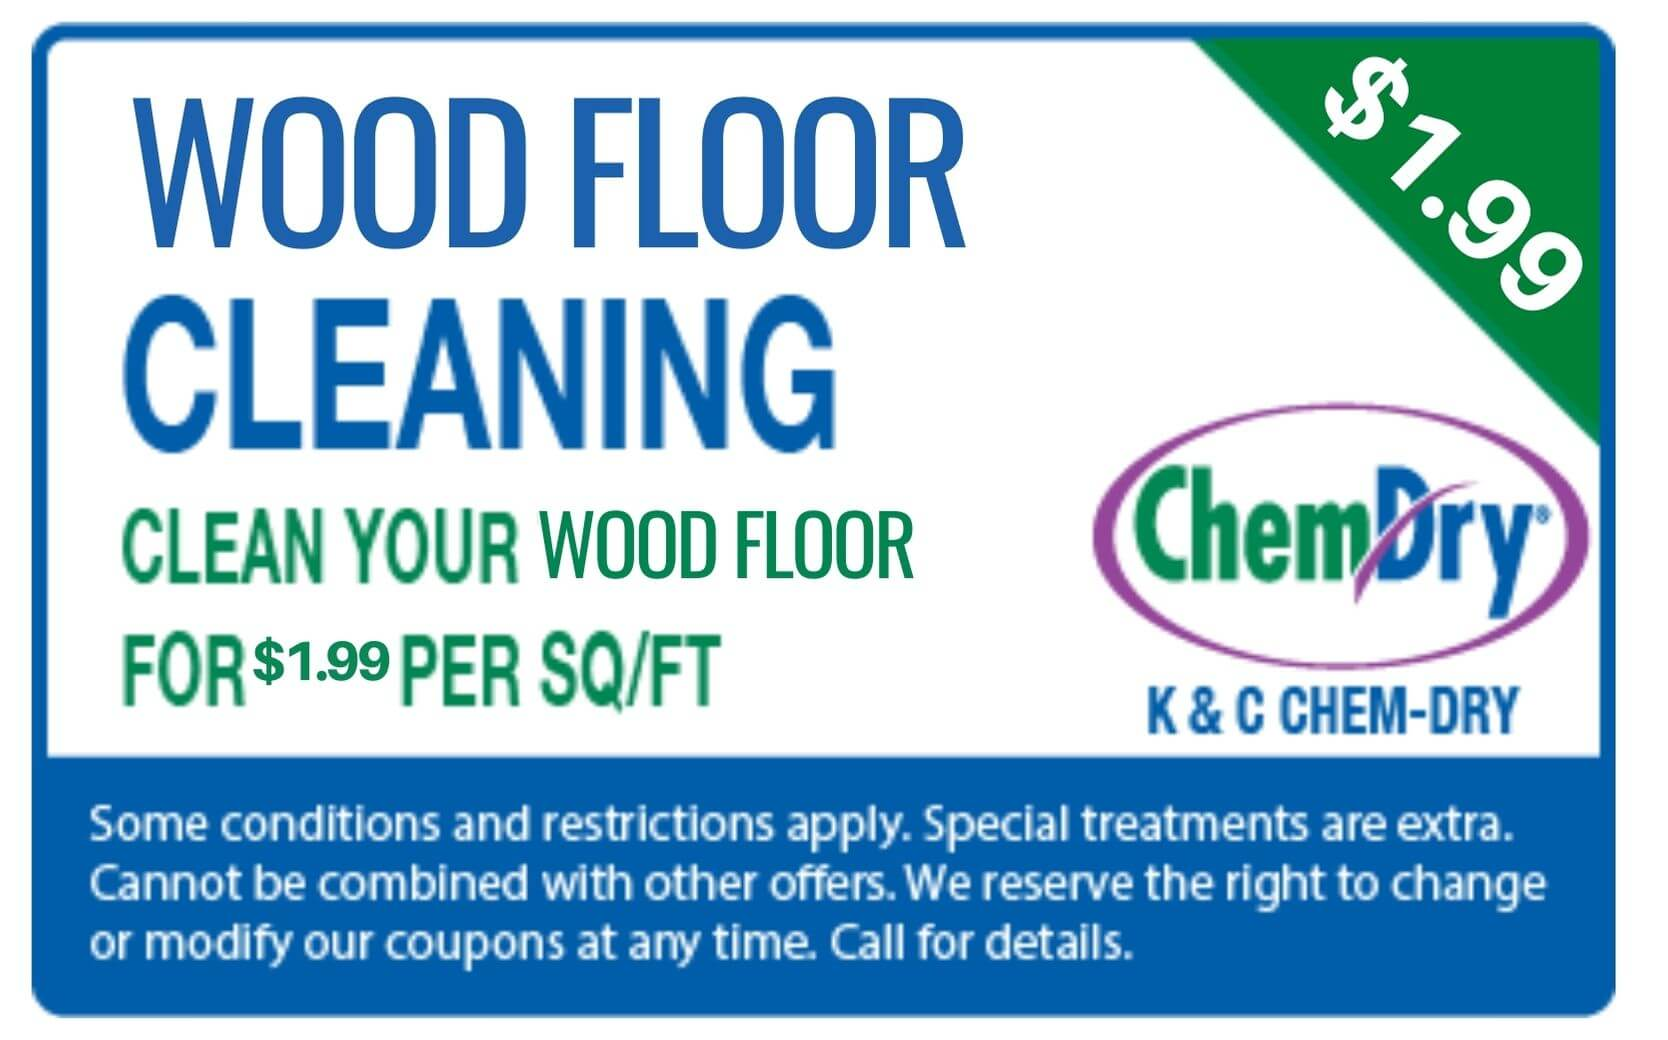 wood floor cleaning for 1.99 per sq/ft coupon